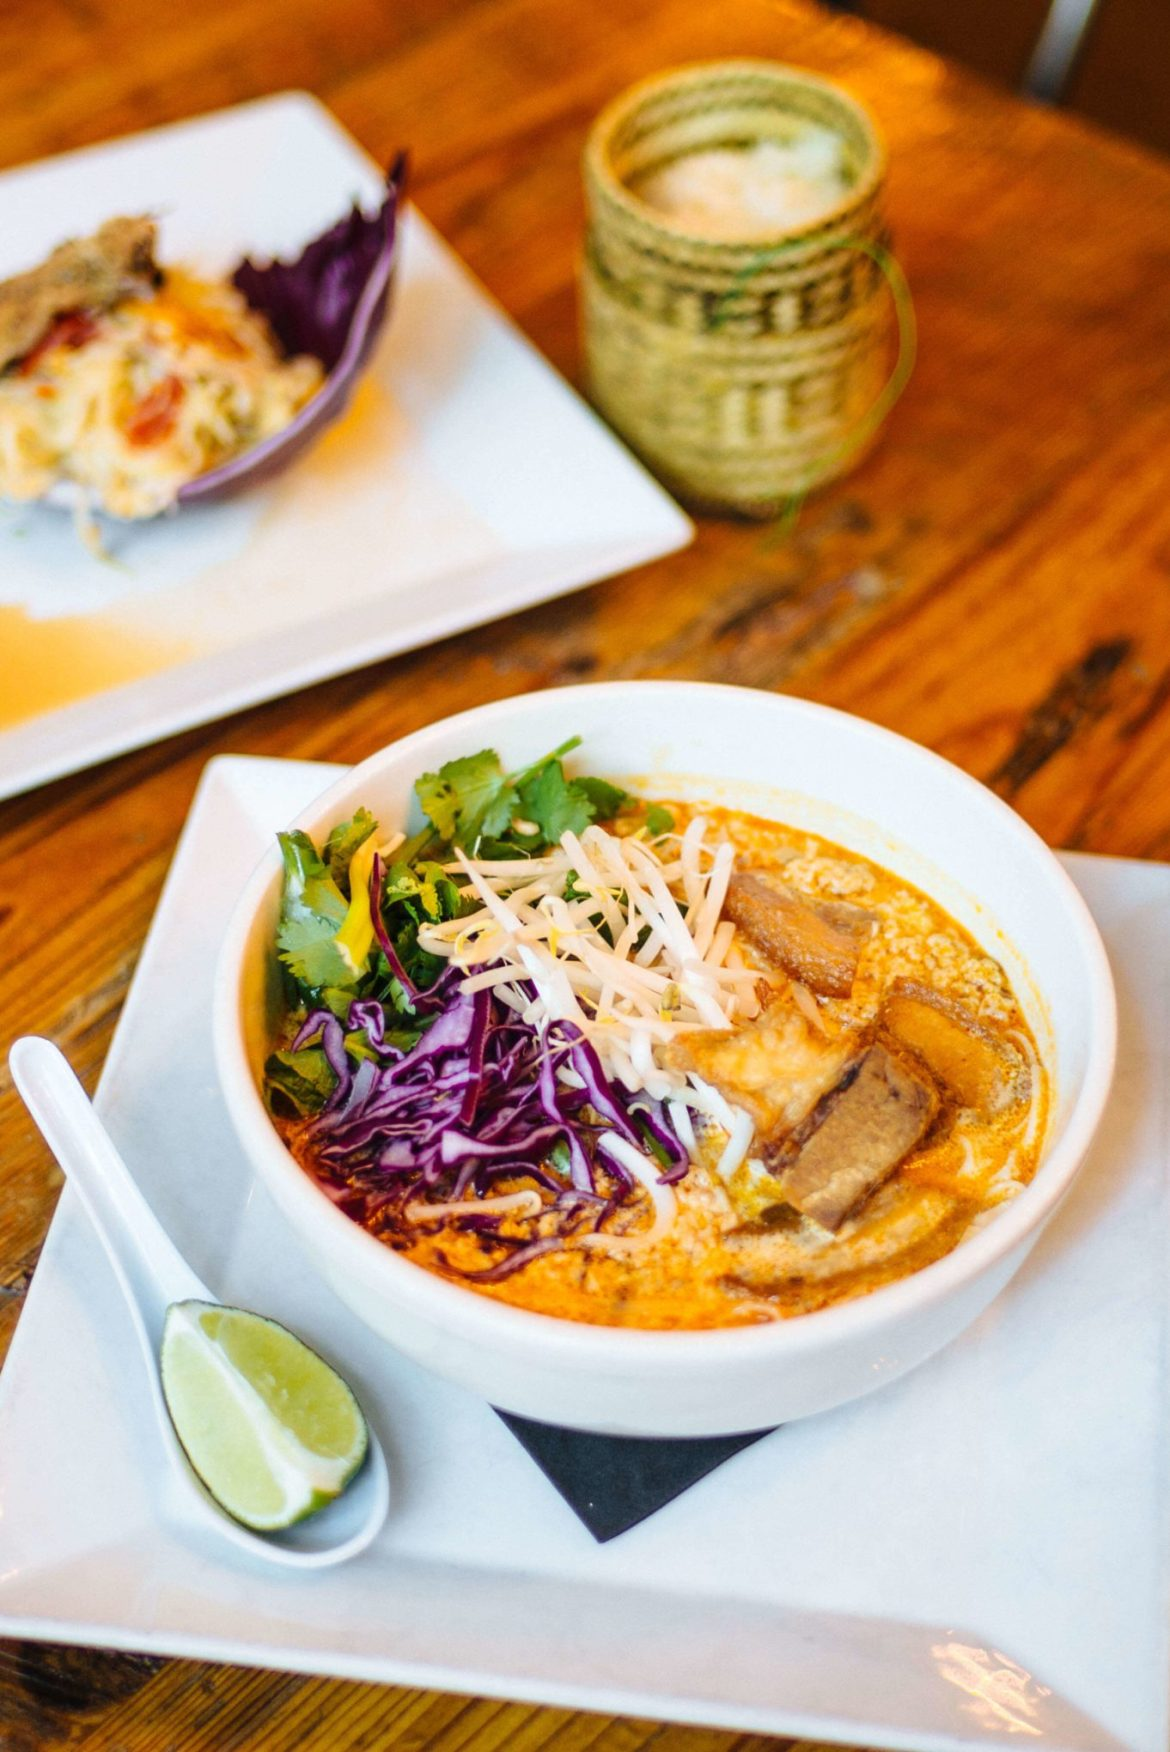 Try the Crispy Pork Belly soup and the Green Papaya salad, at Bida Manda one of the best Asian restaurants, go to this Laotian Bar and Restaurant in Raleigh NC thetasteedit